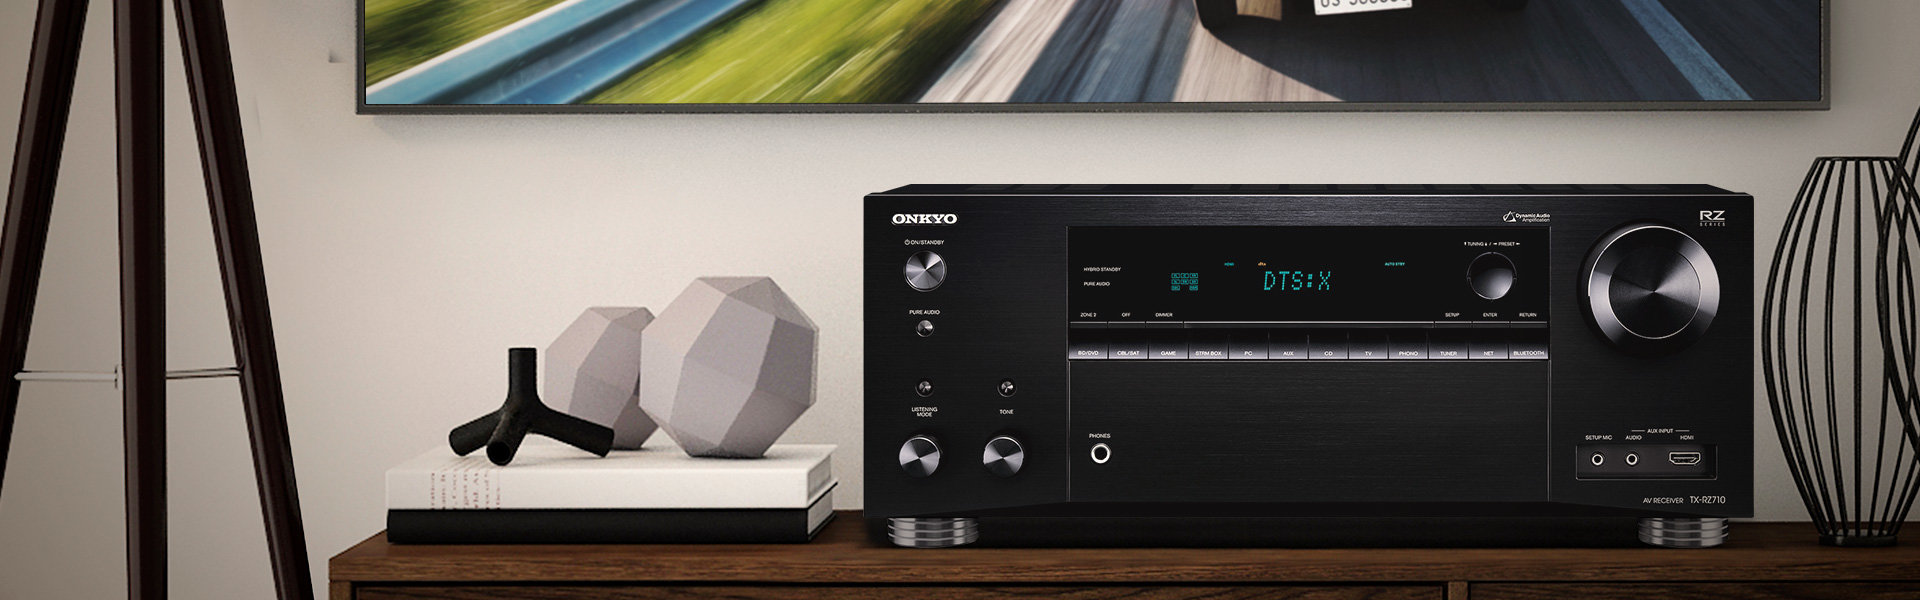 Onkyo TX-RZ710 Receiver and Speaker Packages